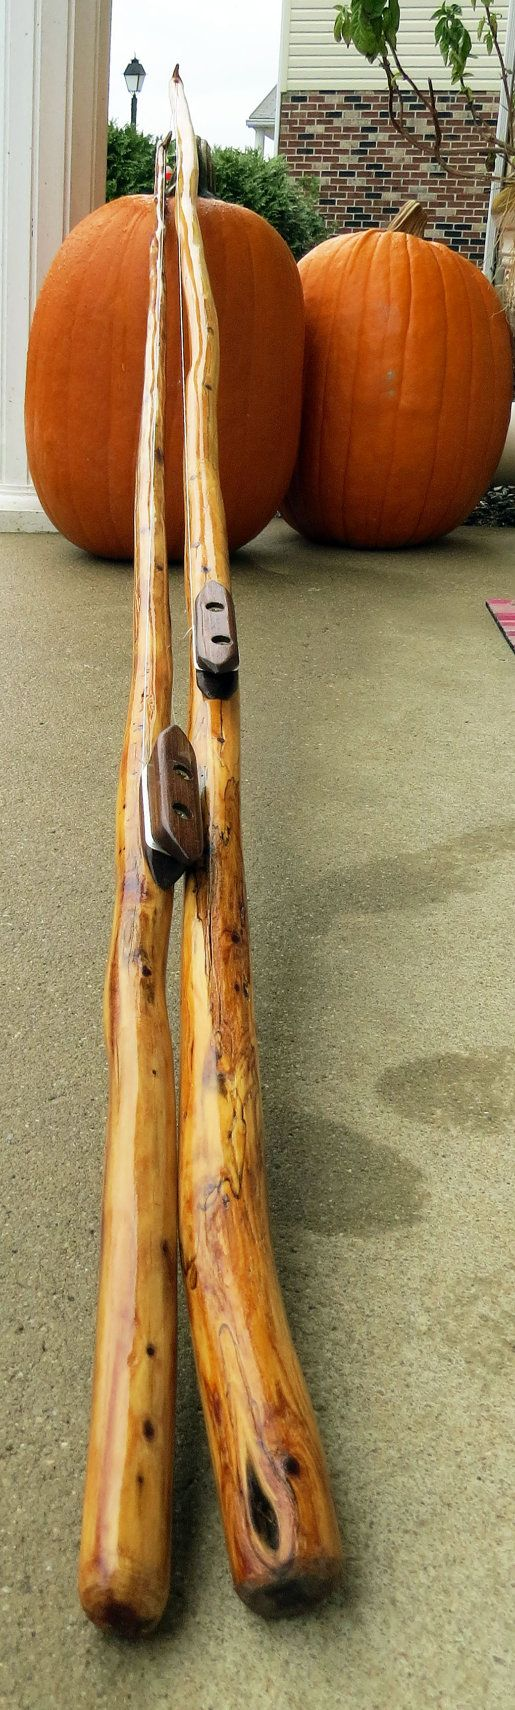 Handmade rustic wooden fishing pole for Wooden fishing pole